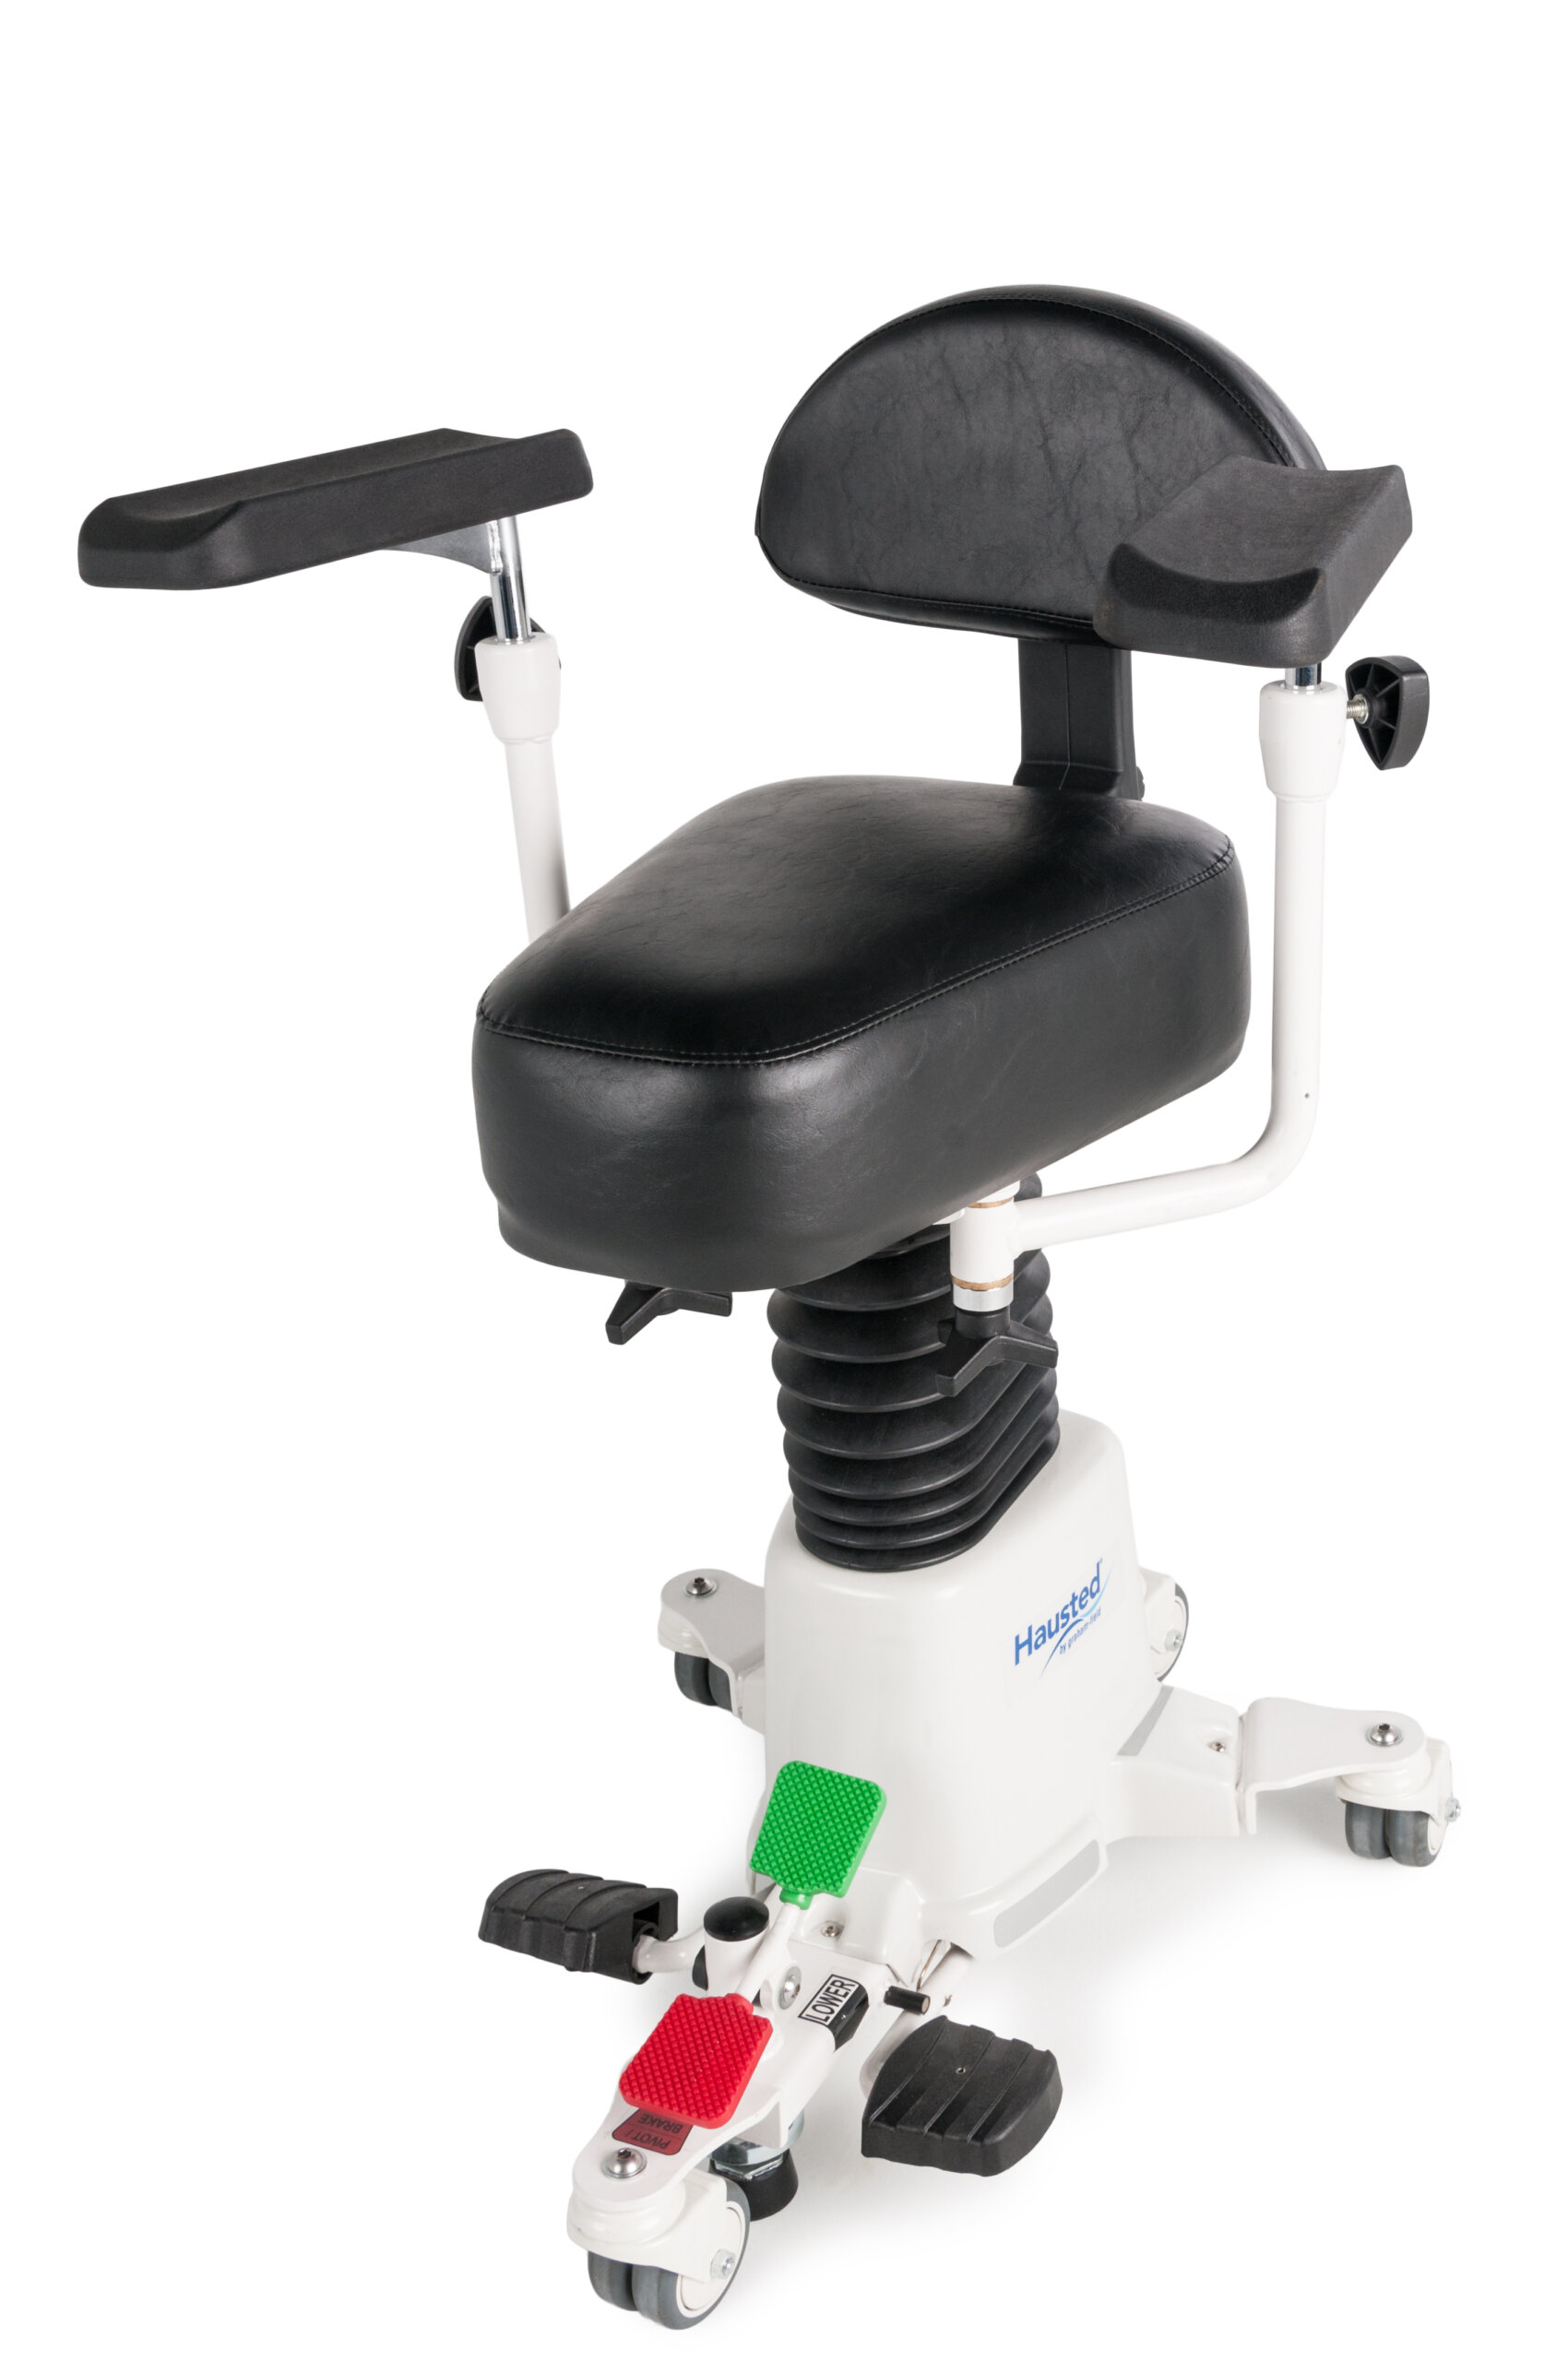 HSS Series Surgical Stool